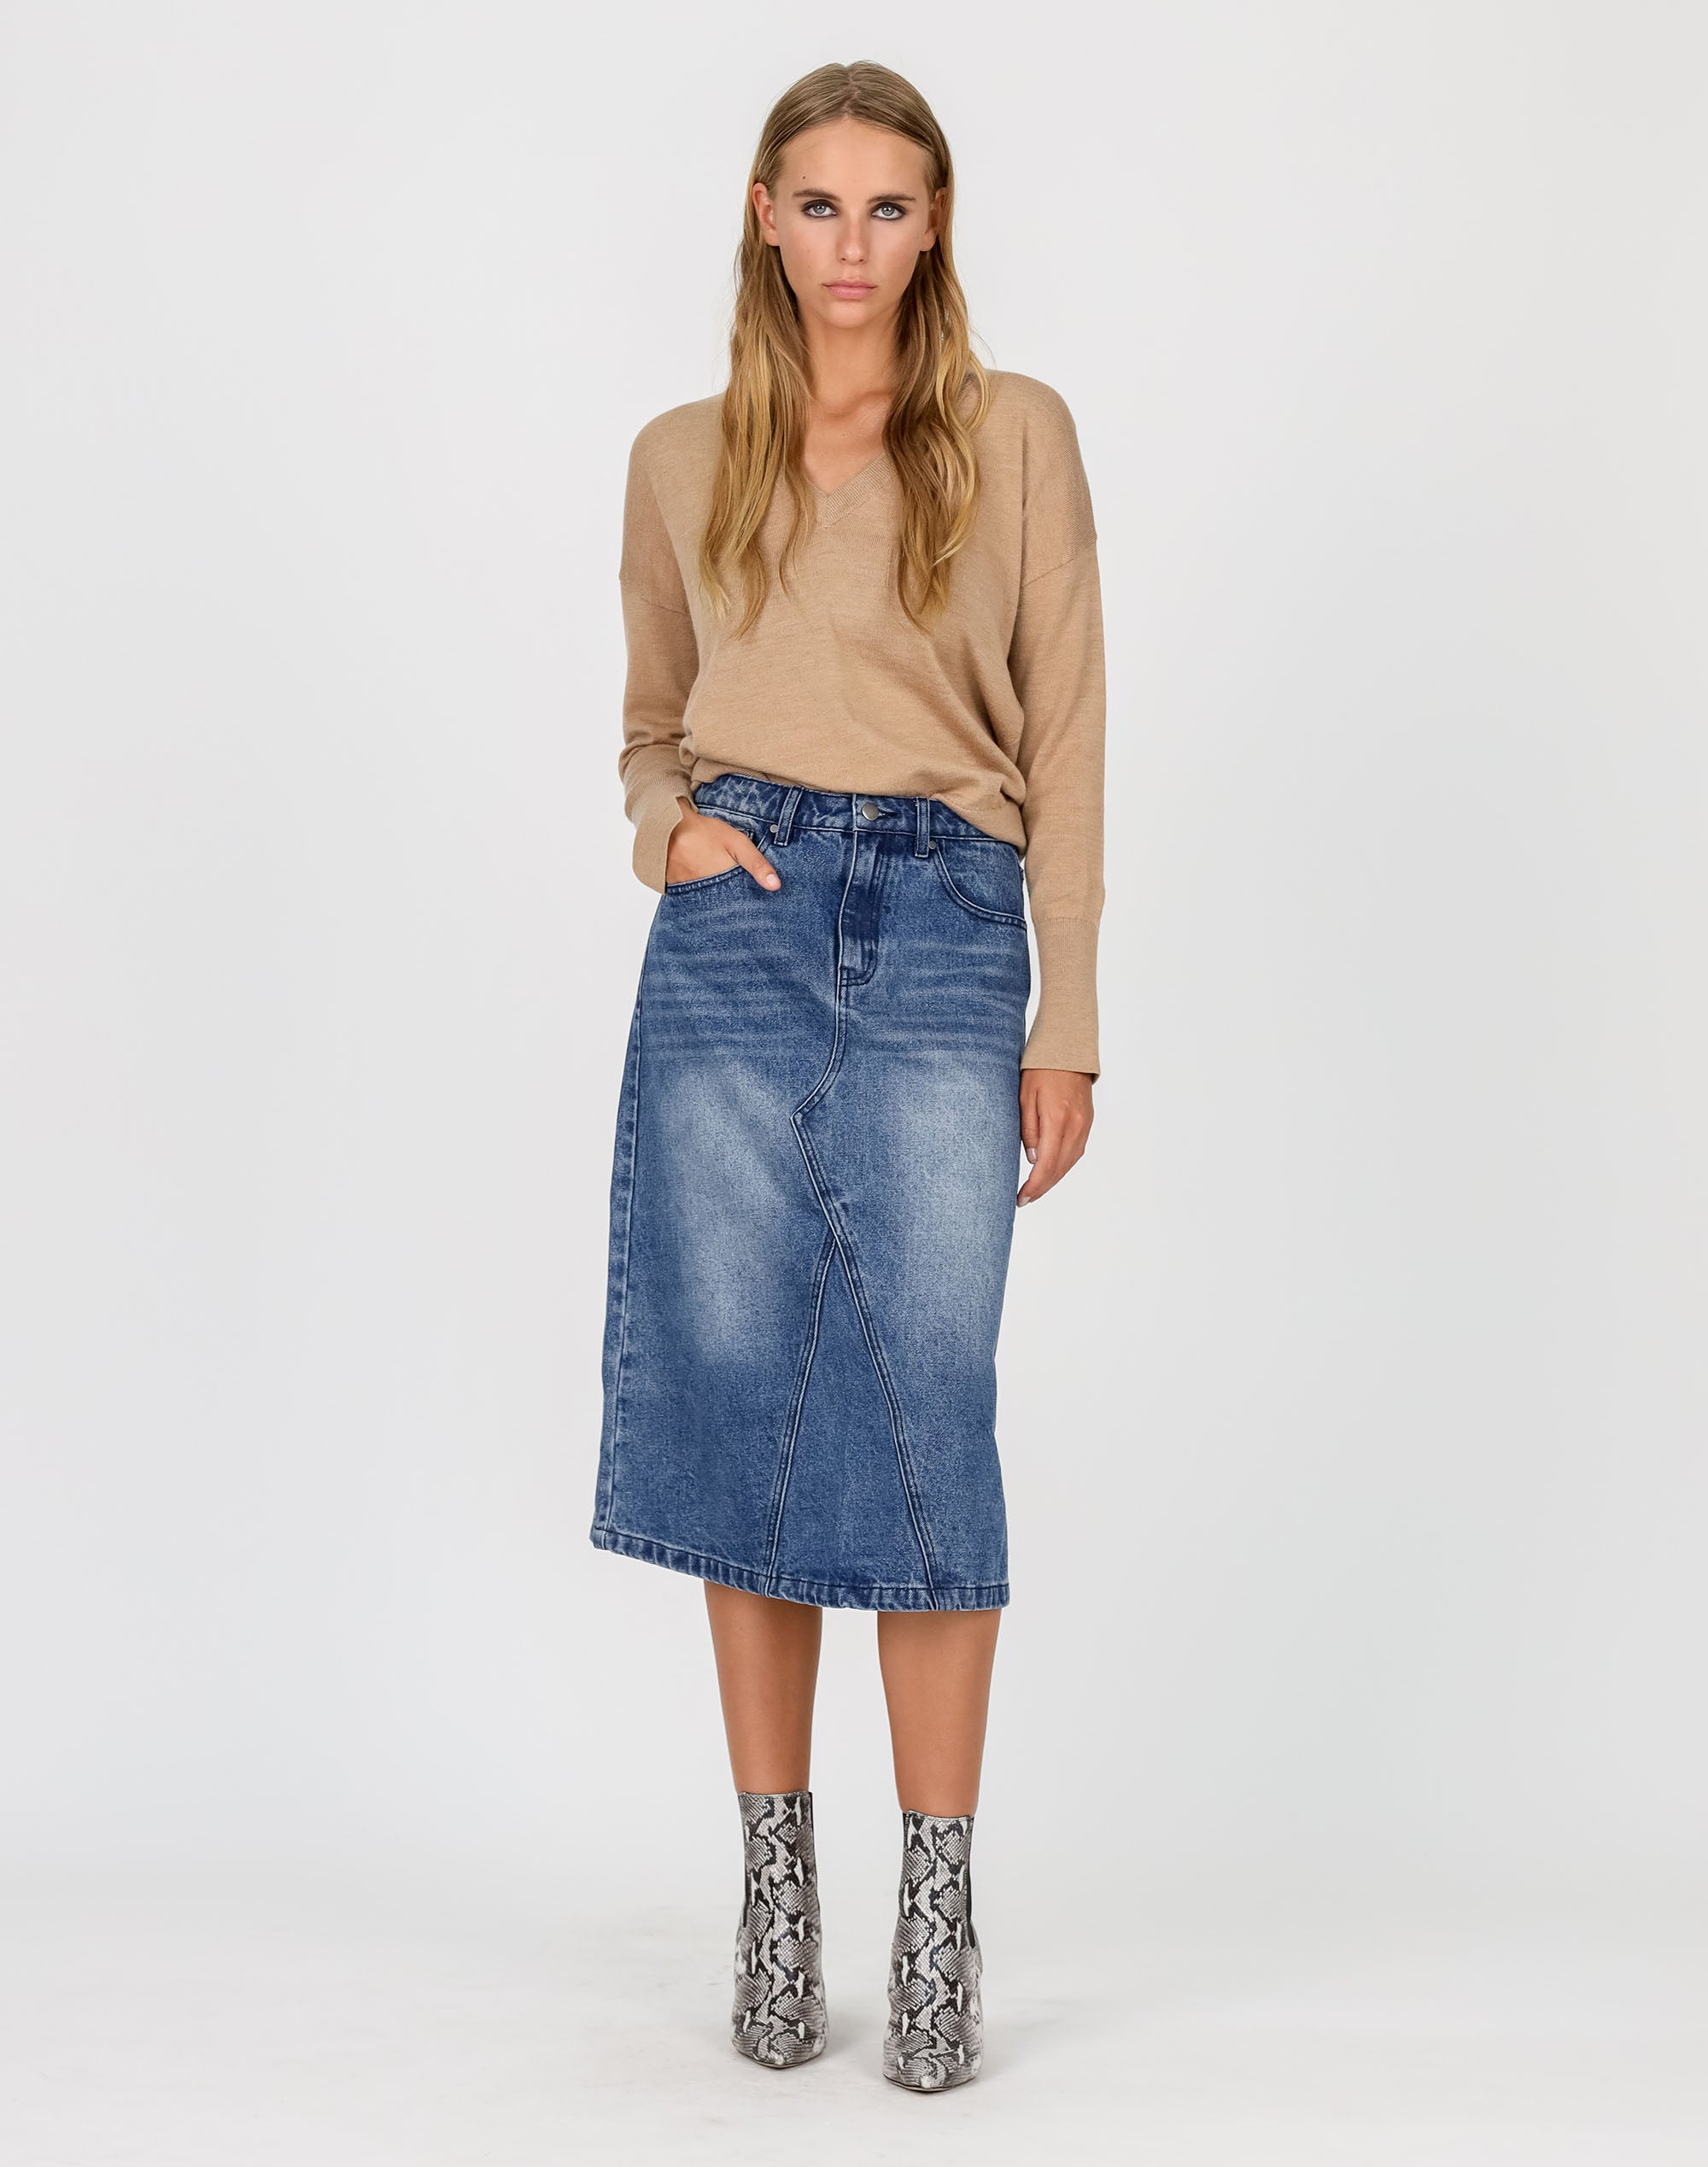 Deep V Merino Sweater